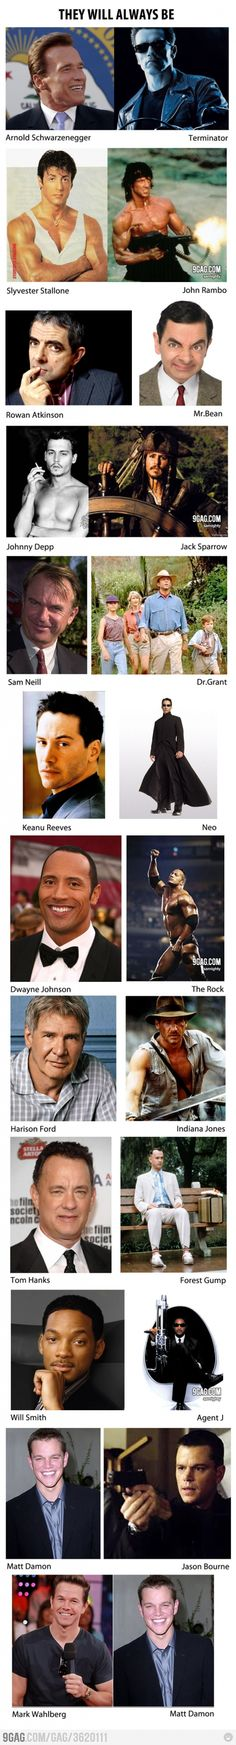 Well... yes and no. Johnny Depp is not just Jack Sparrow to me, and Will Smith will always be Fresh Prince. As for Mark Wahlberg, as a 90s kid I will always think of him as Marky Mark.